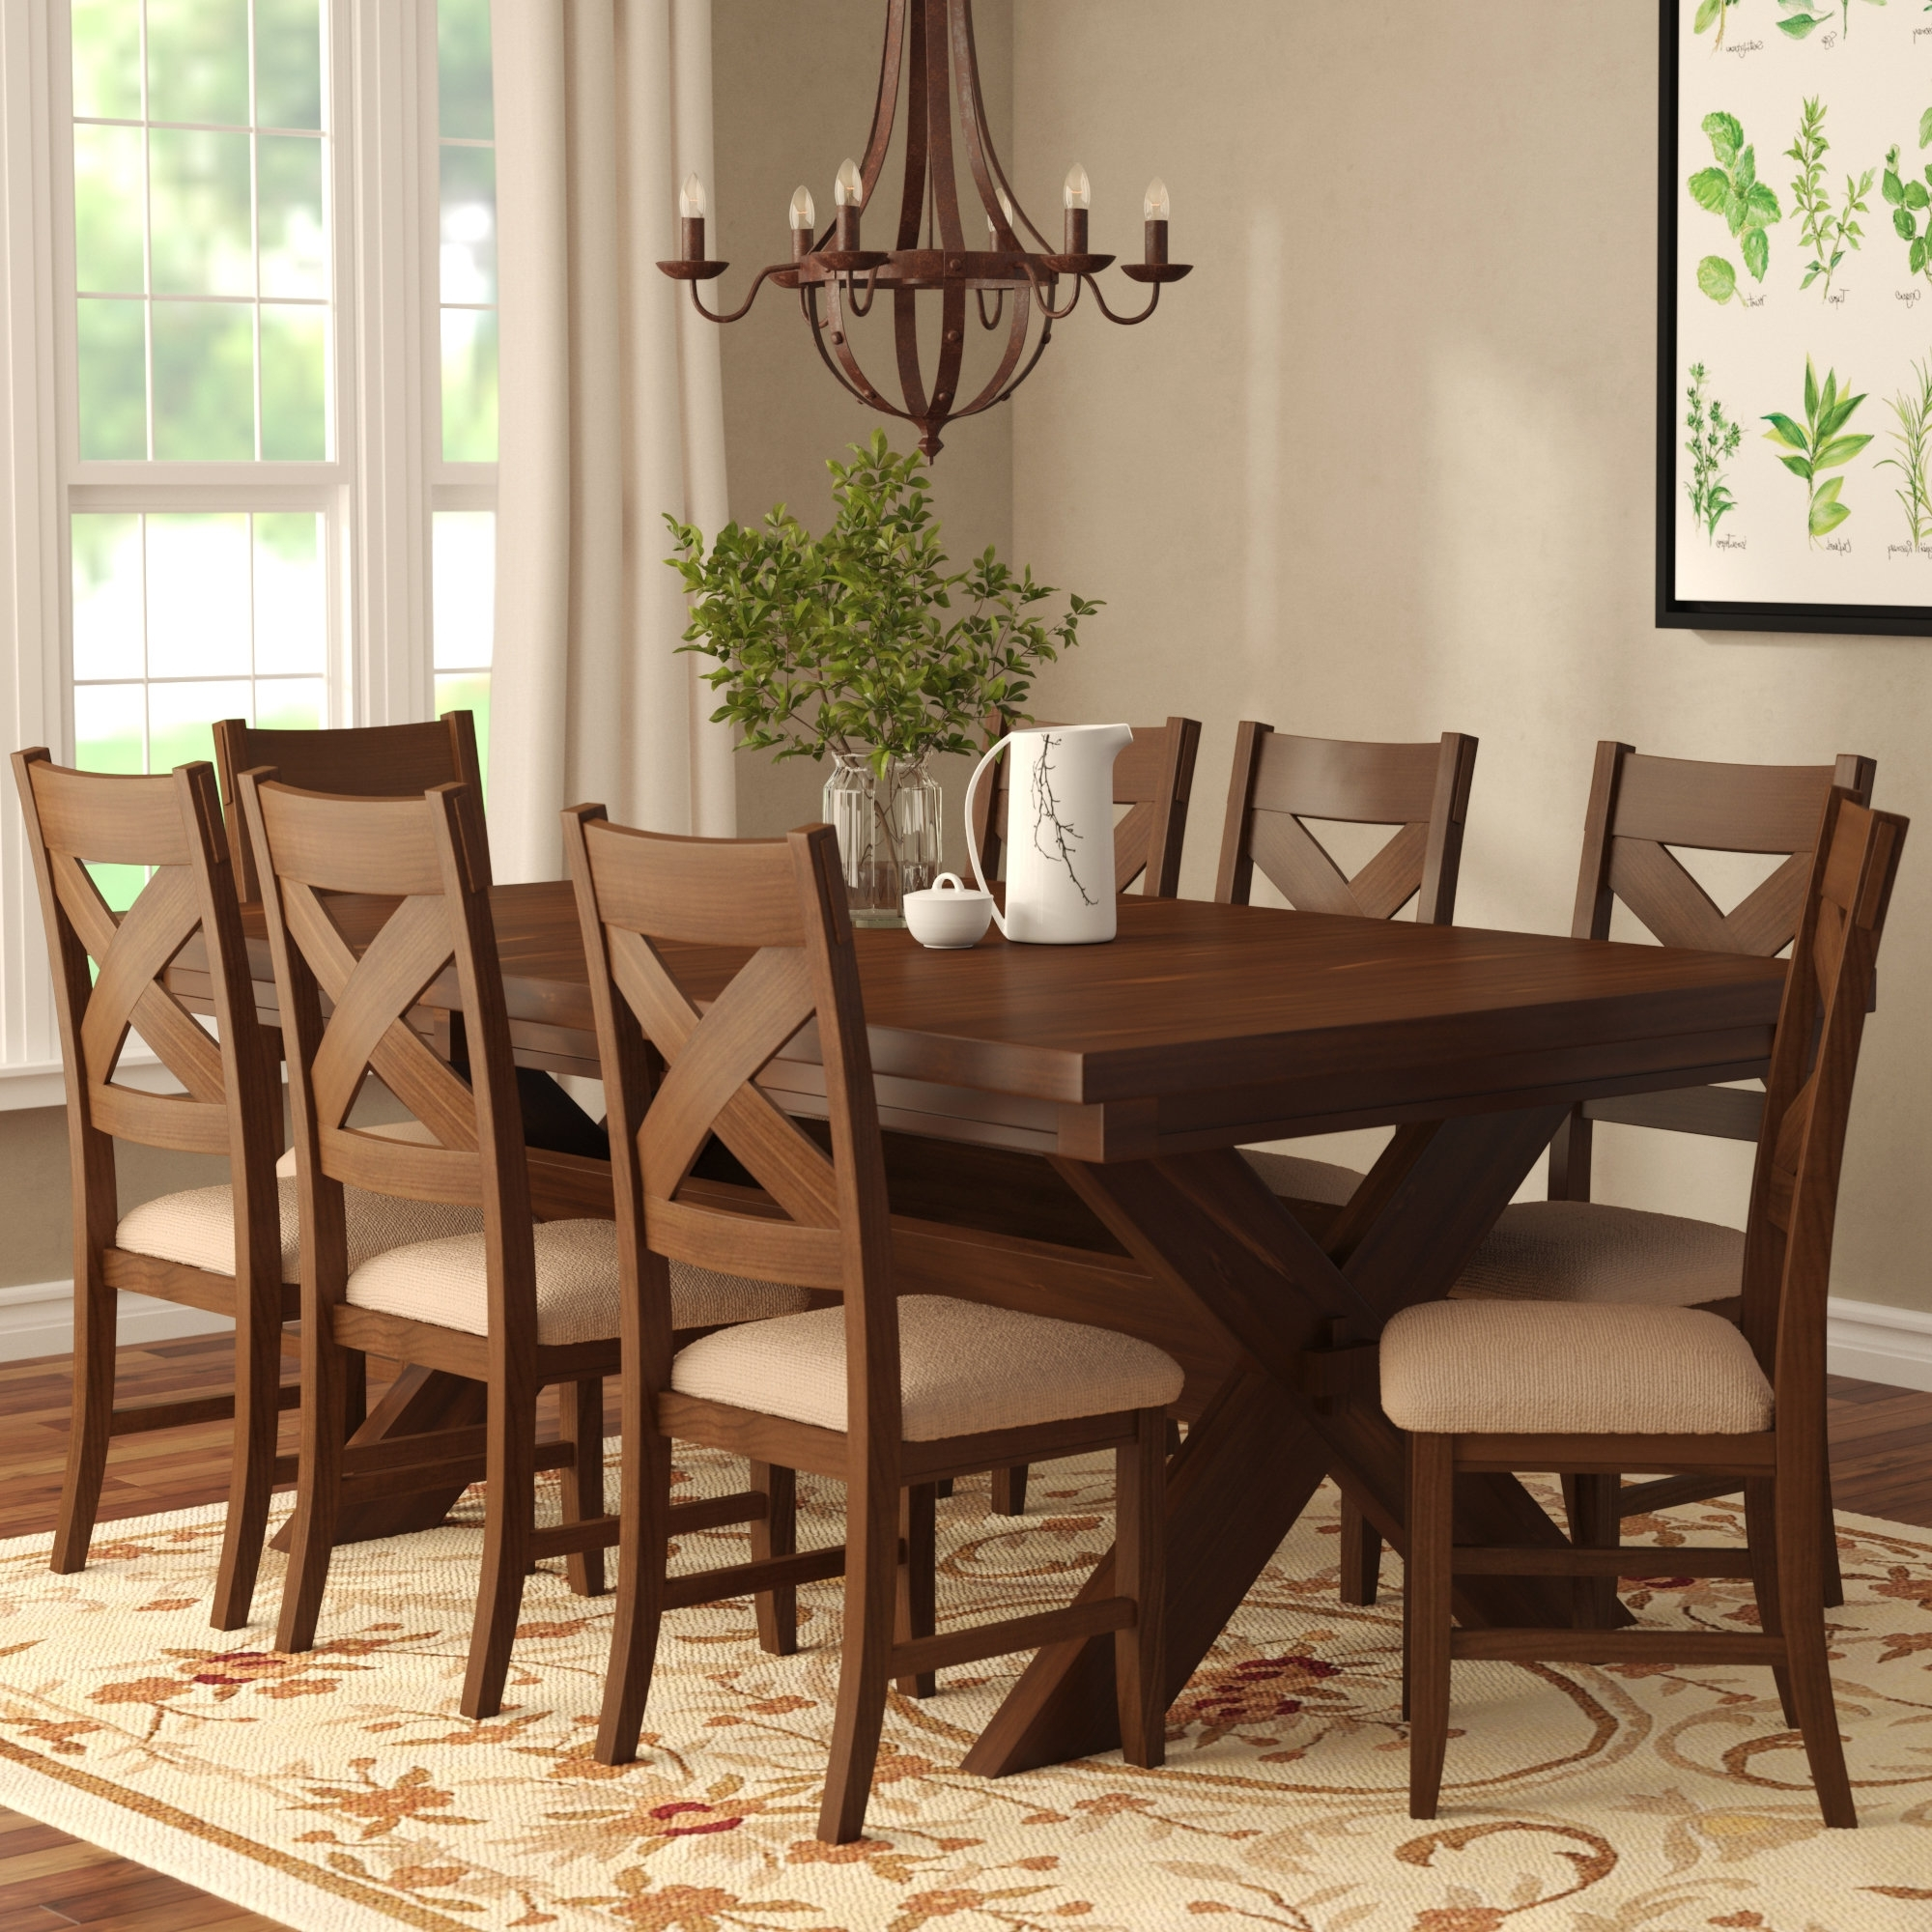 Caden 6 Piece Dining Sets With Upholstered Side Chair Regarding Famous Laurel Foundry Modern Farmhouse Isabell 9 Piece Dining Set & Reviews (View 6 of 25)